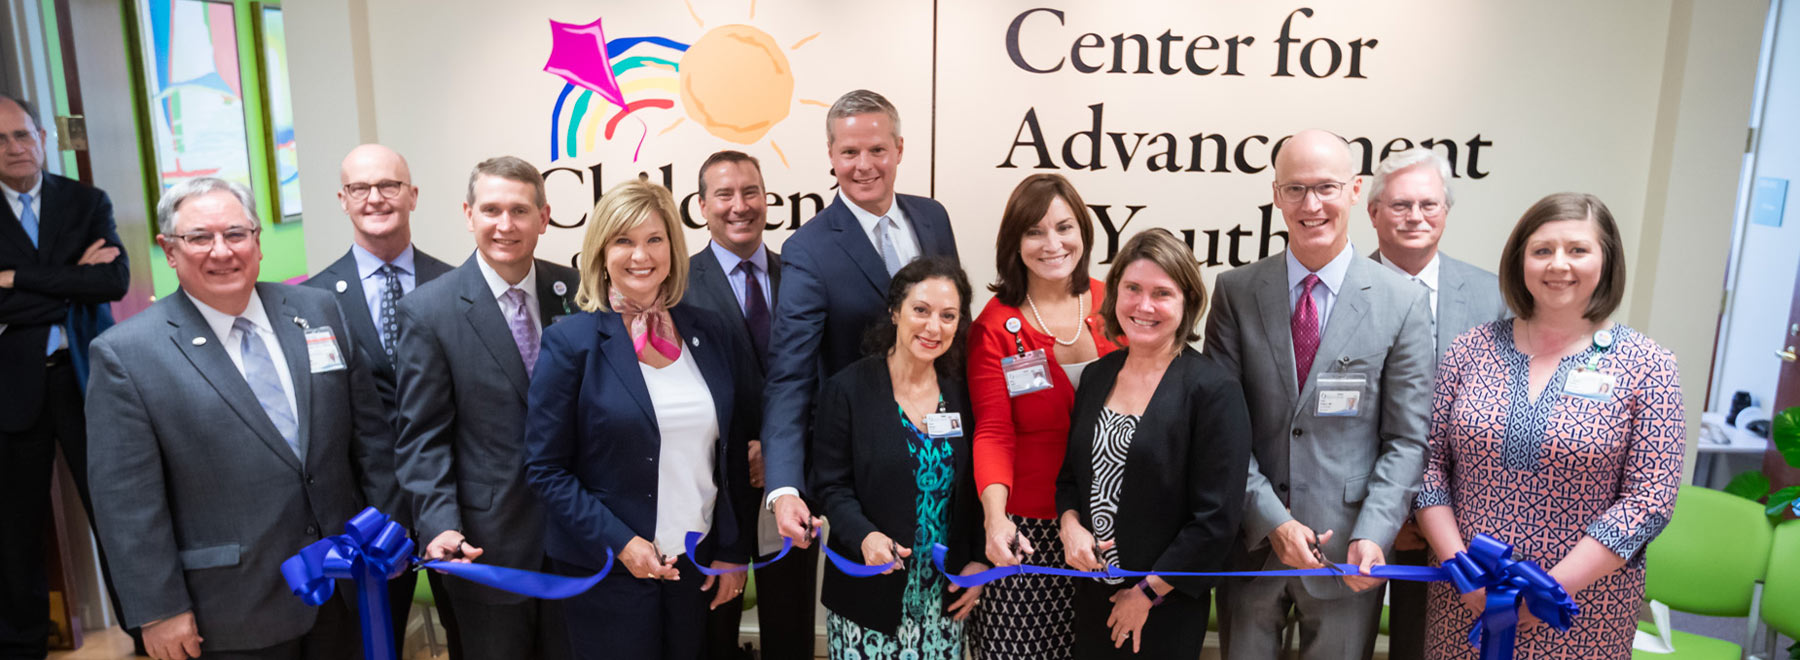 Leaders cut ribbon on new, larger home for Center for Advancement of Youth